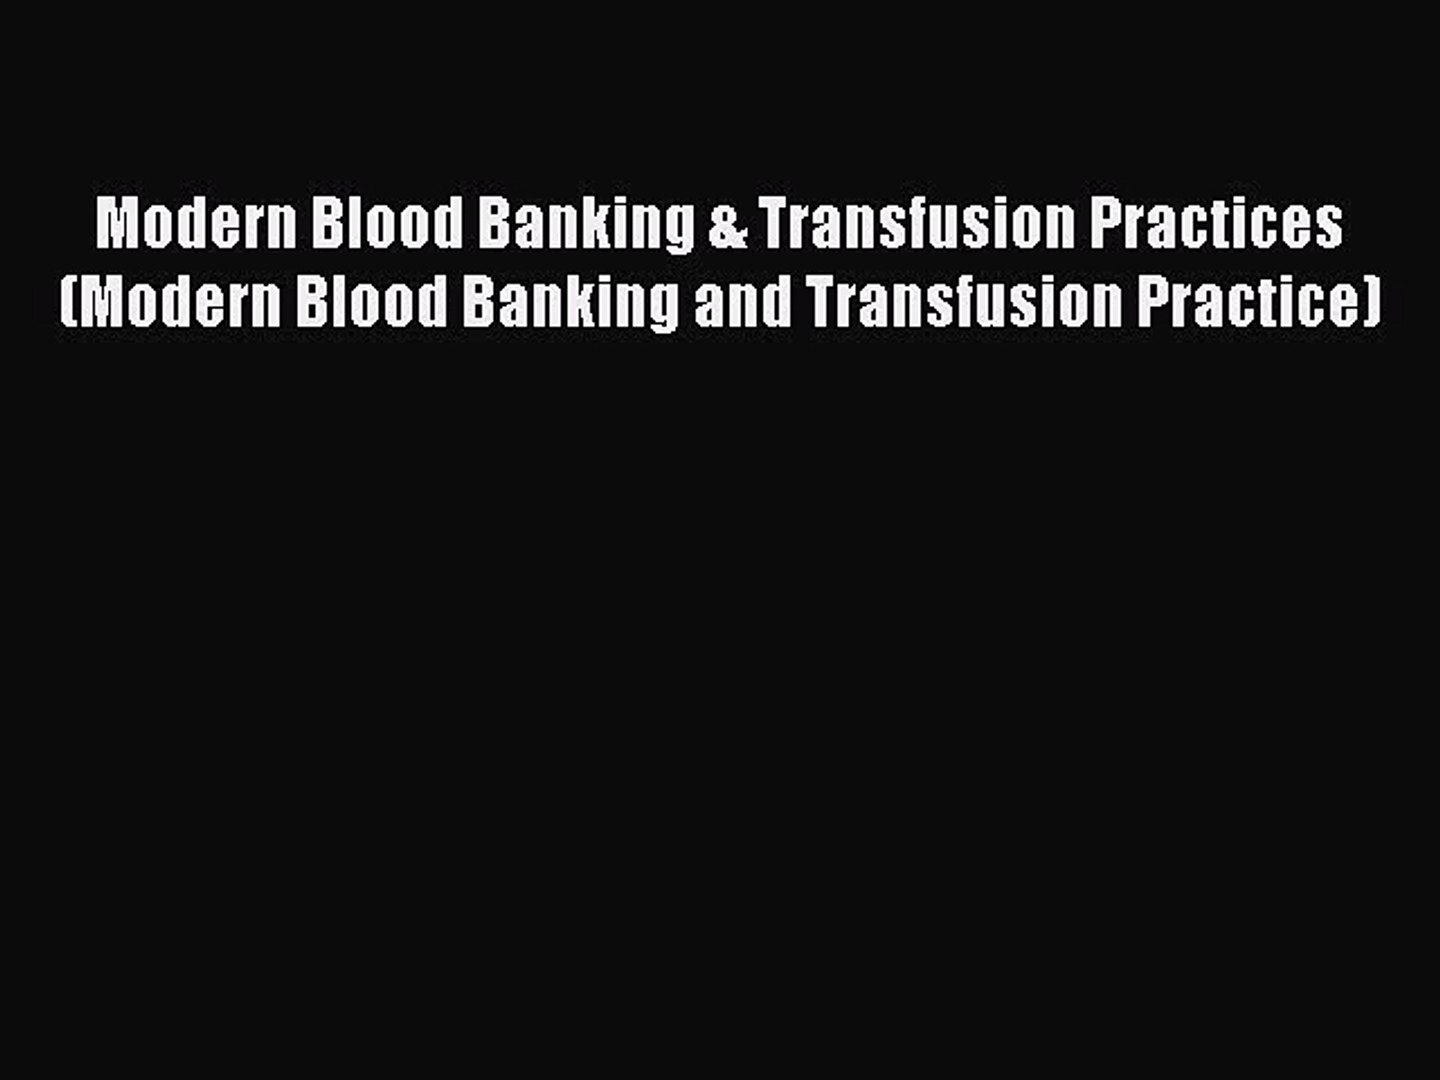 Download Modern Blood Banking & Transfusion Practices (Modern Blood Banking and Transfusion